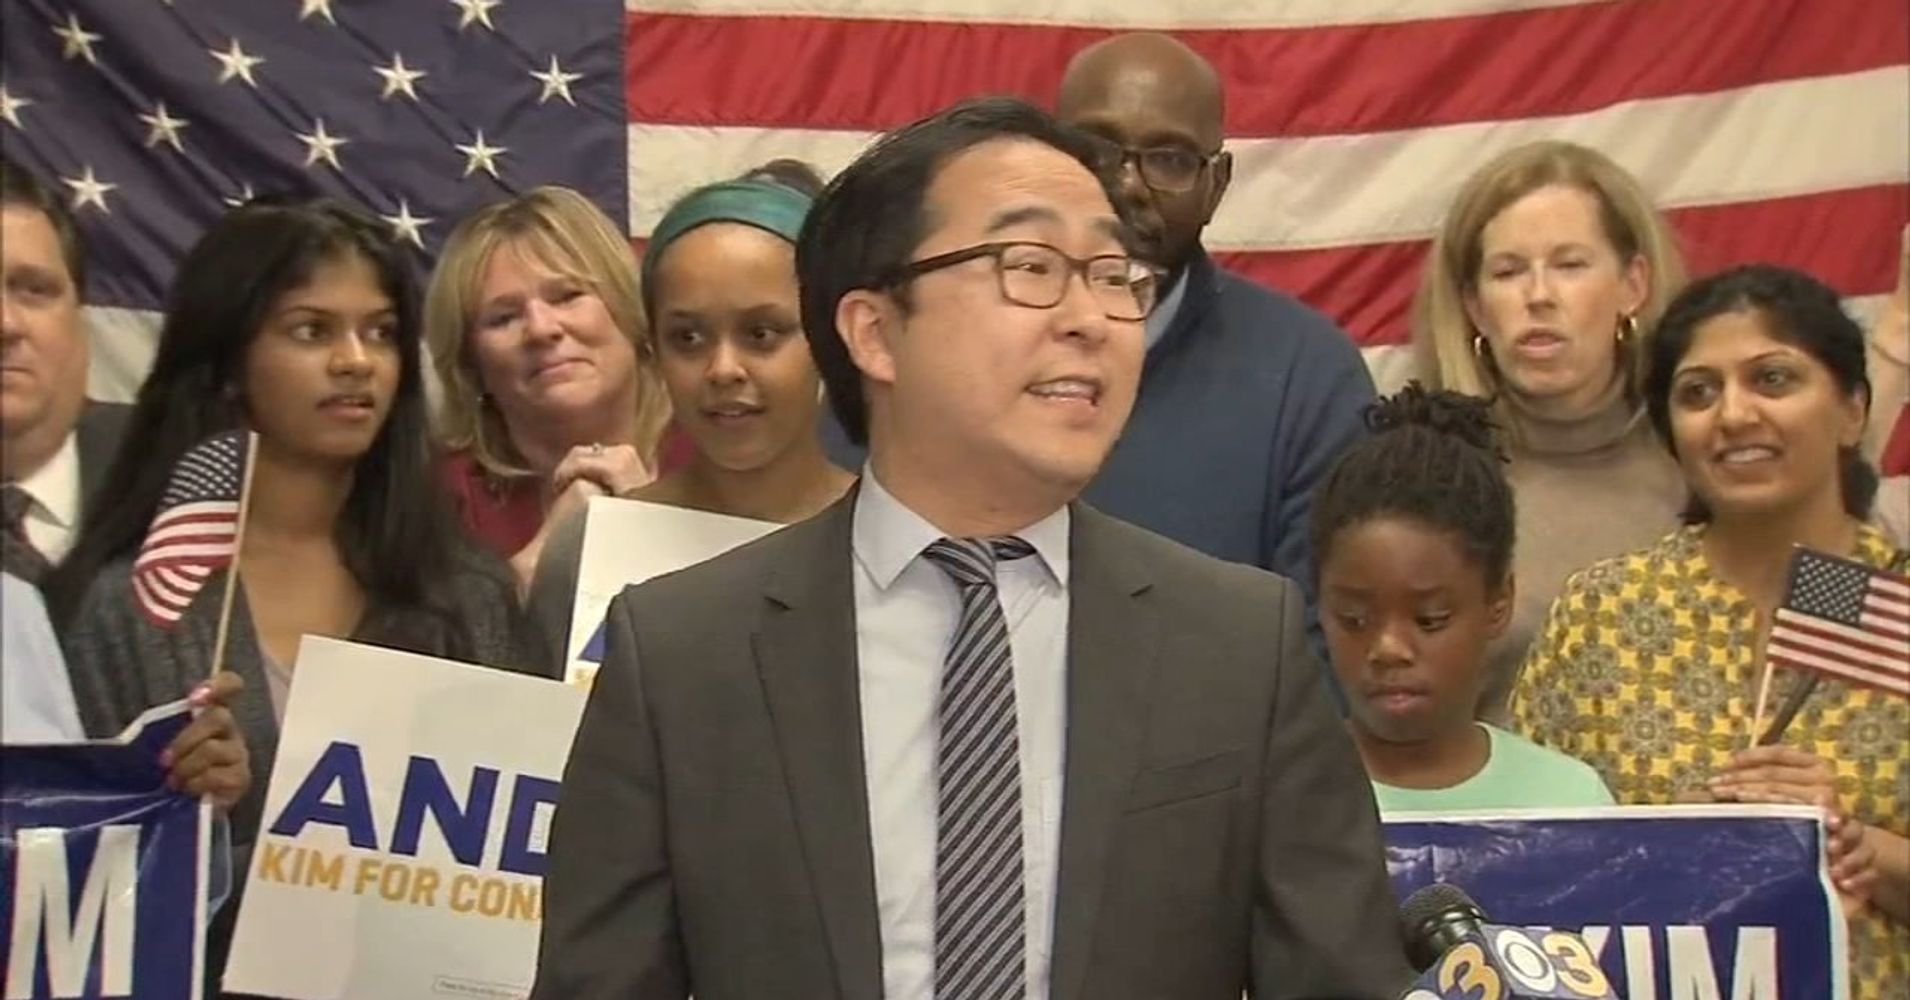 Andy Kim Beats Obamacare Repeal Architect Tom MacArthur, Building Democratic House Majority